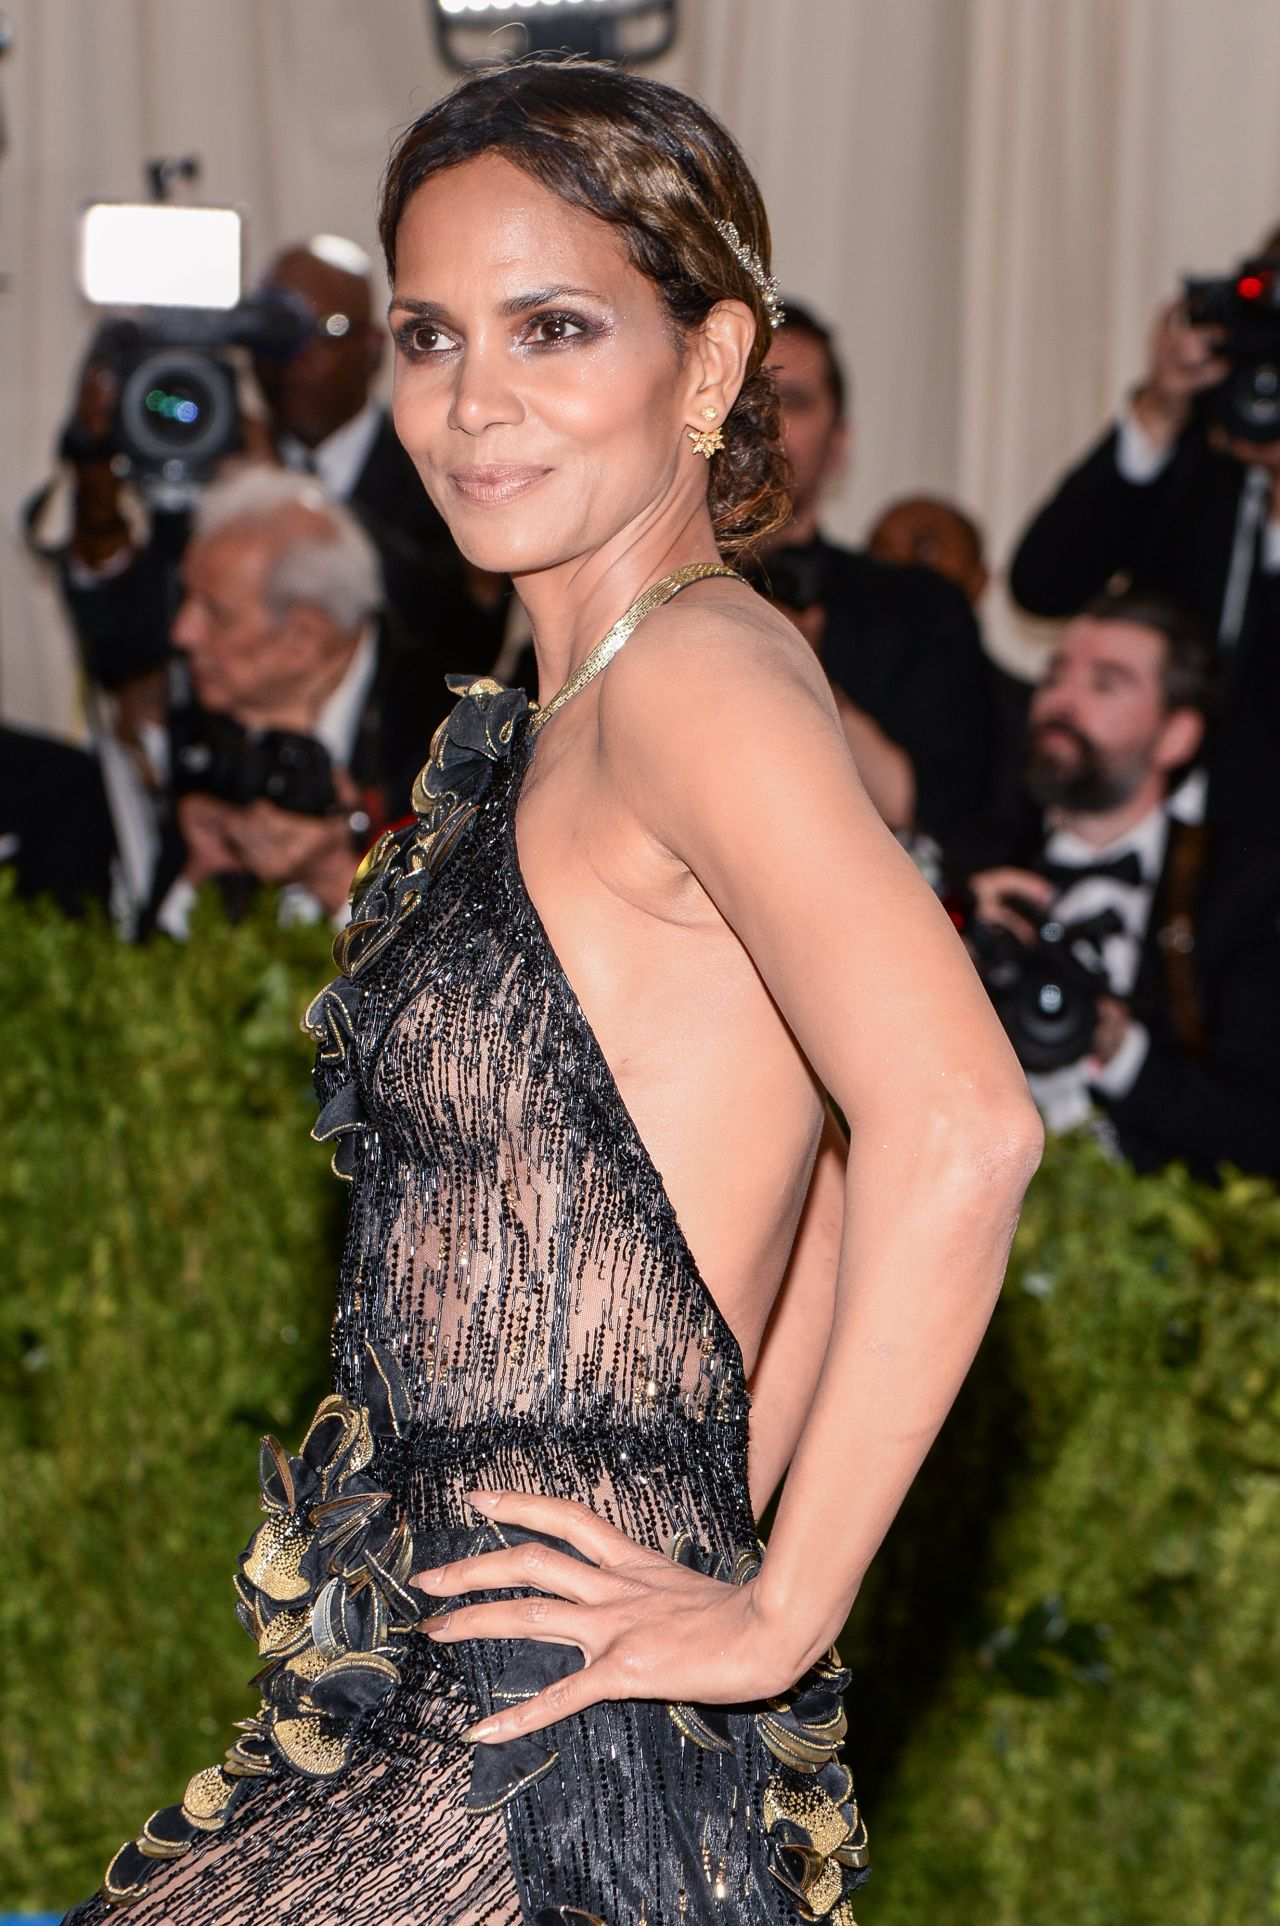 Halle Berry News, Pictures, and Videos m